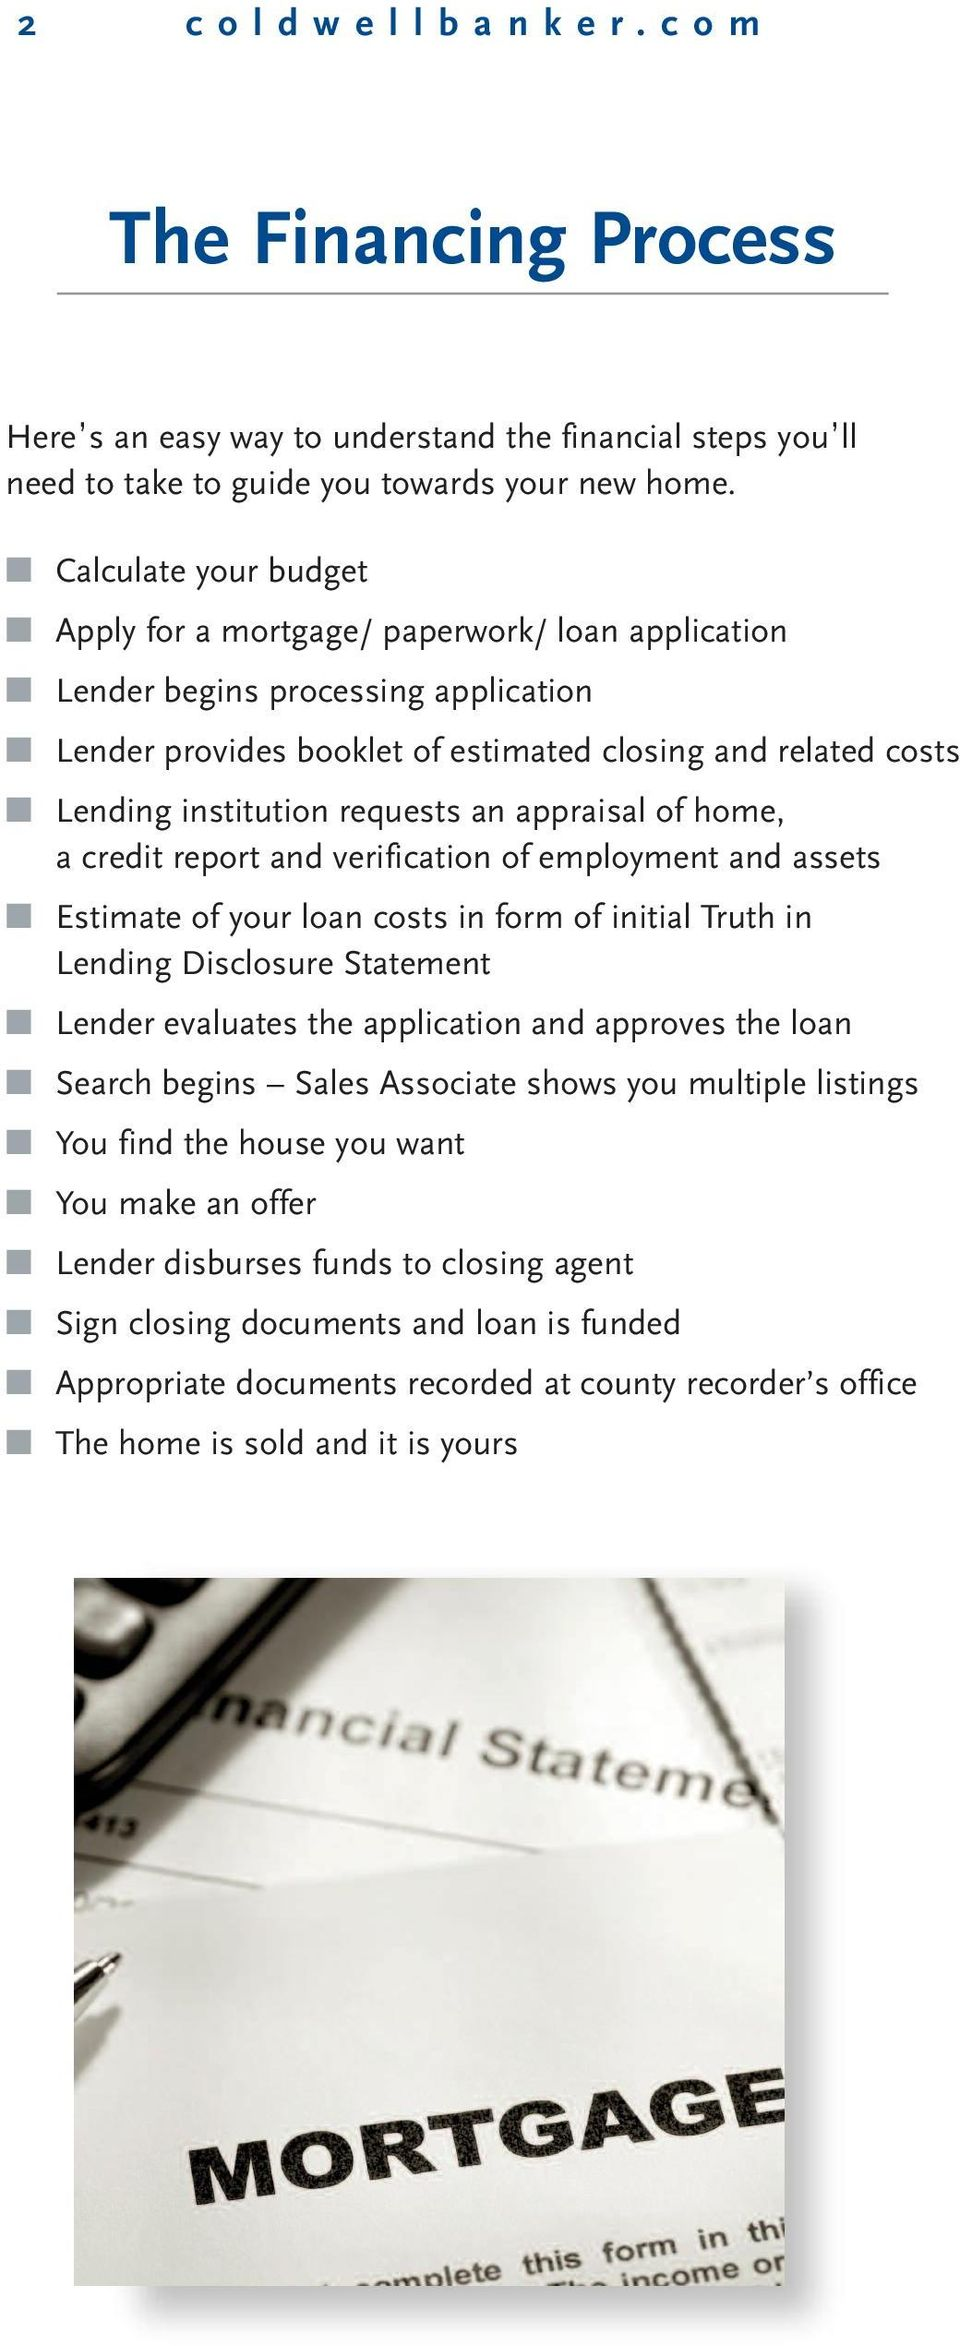 requests an appraisal of home, a credit report and verification of employment and assets Estimate of your loan costs in form of initial Truth in Lending Disclosure Statement Lender evaluates the